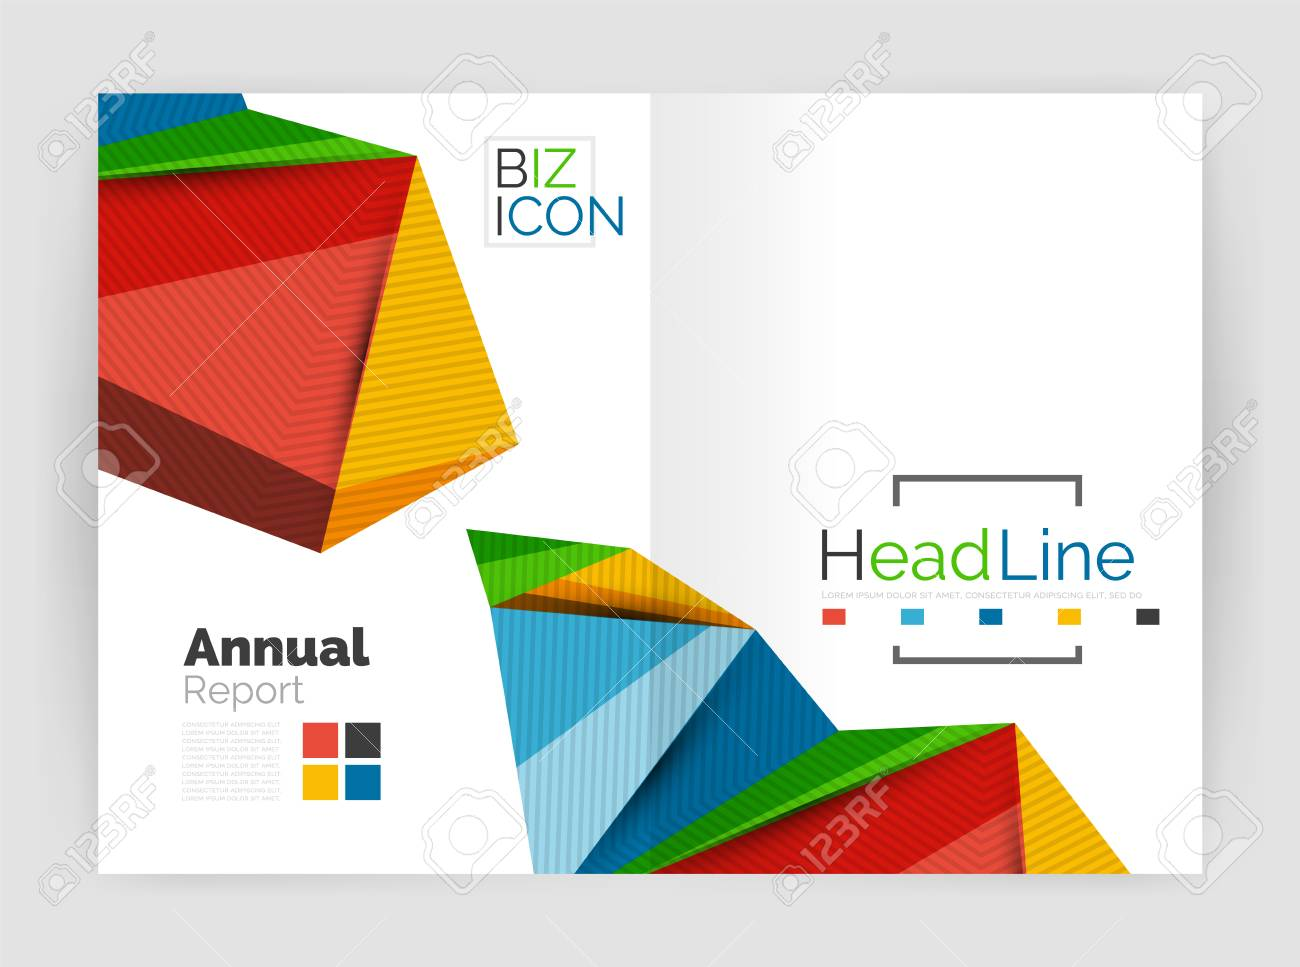 3d Low Poly Shapes Design For Business Brochure Template Vector